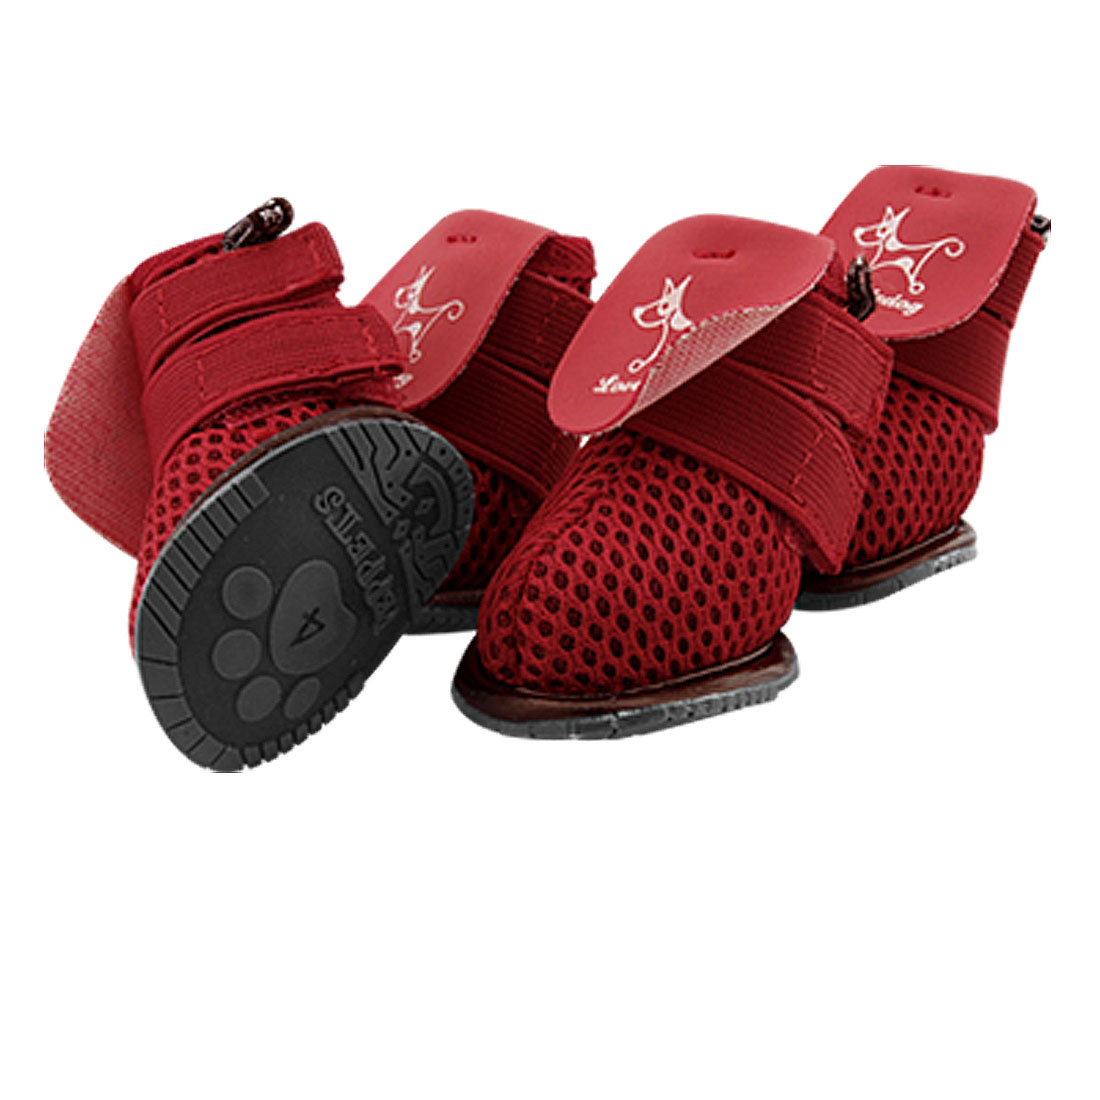 Red Protective Dog Shoes Puppy Mesh Boots Booties Size 4